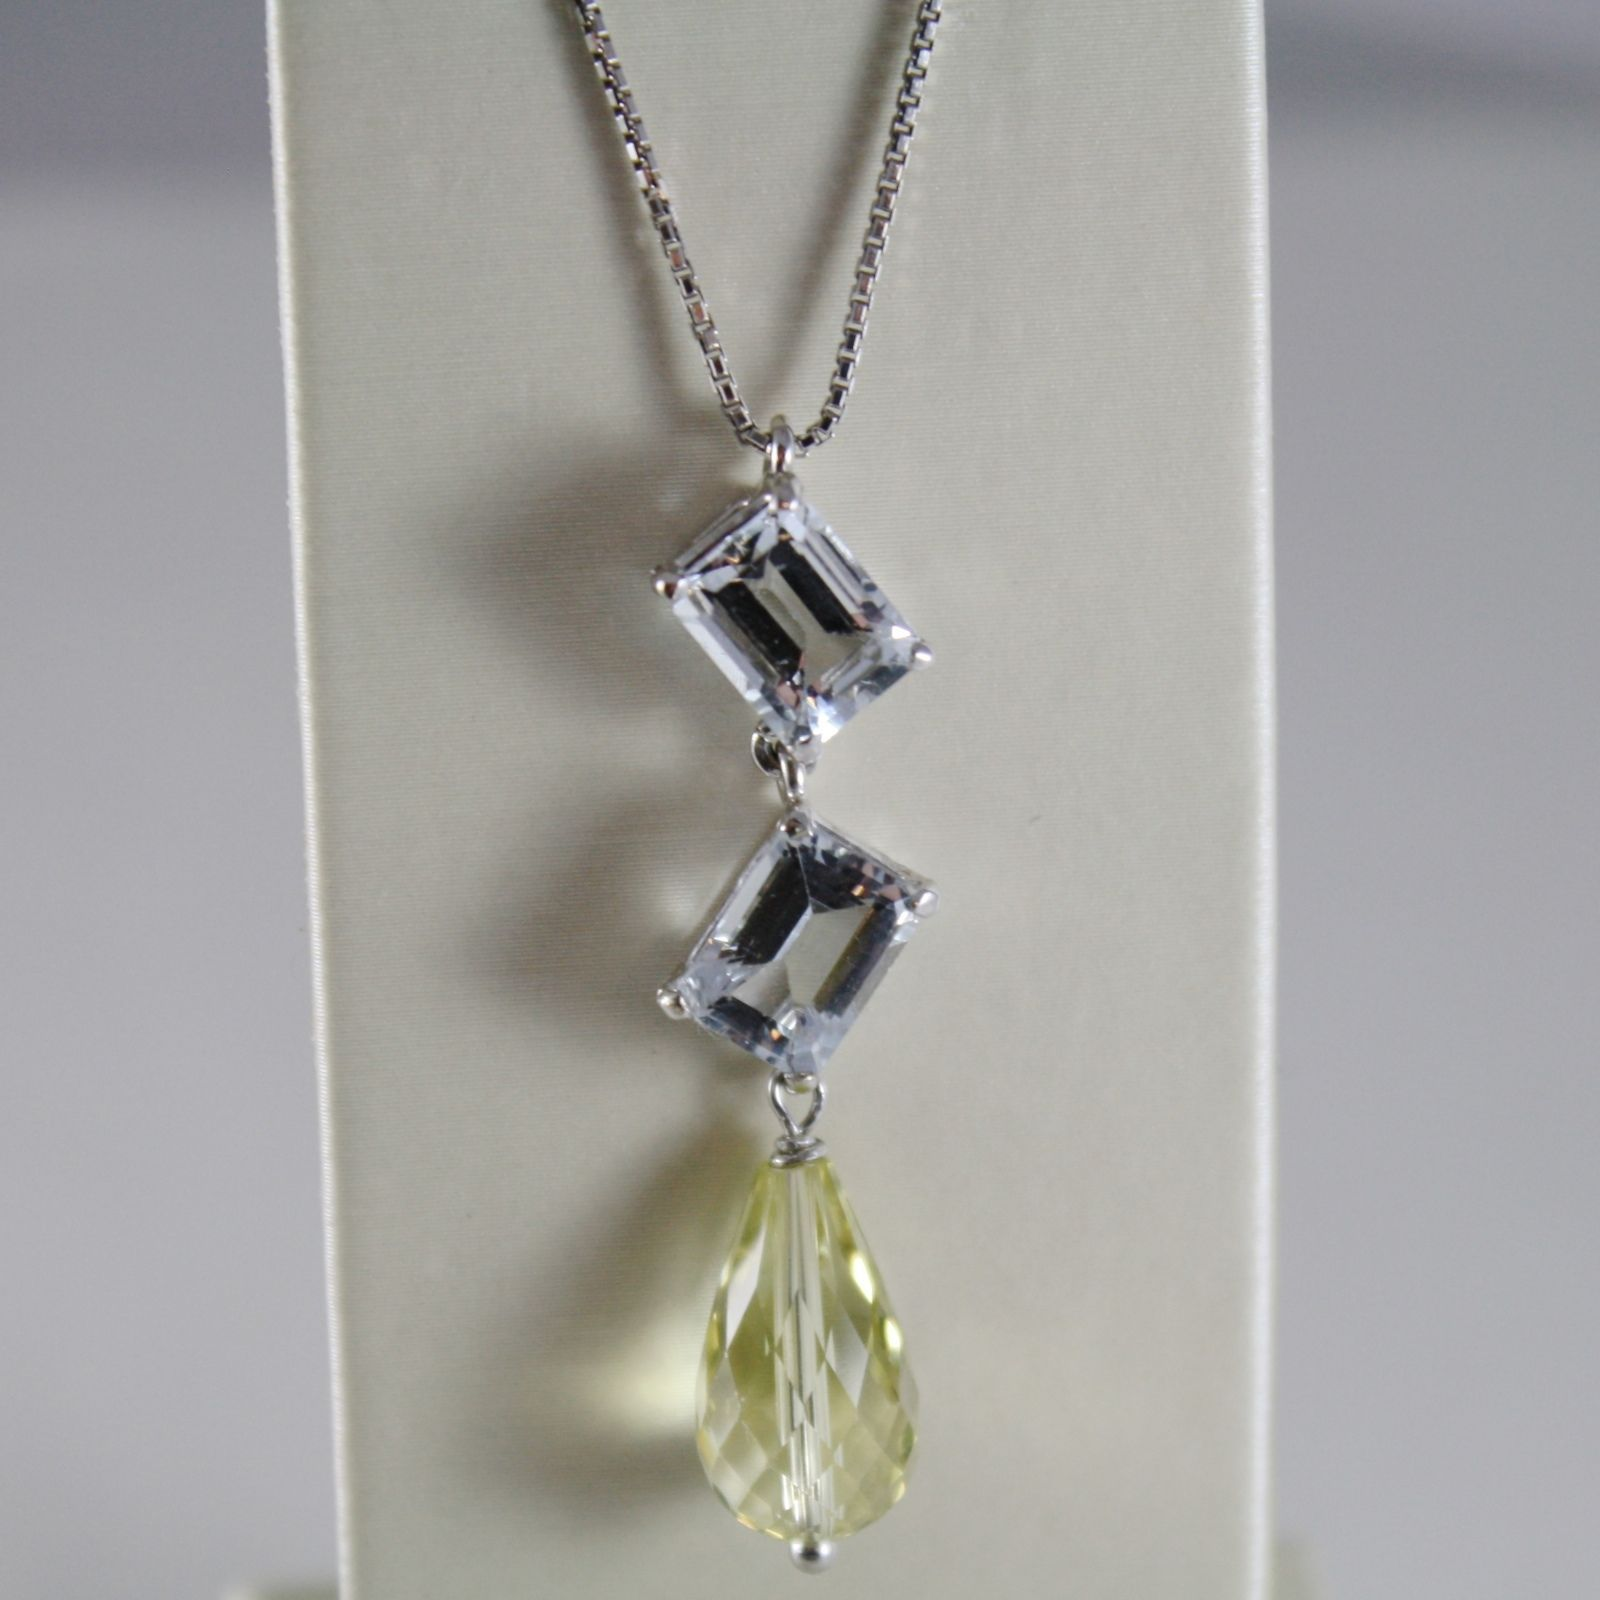 18K WHITE GOLD CHAIN NECKLACE WITH DROP LEMON QUARTZ & AQUAMARINE MADE IN ITALY